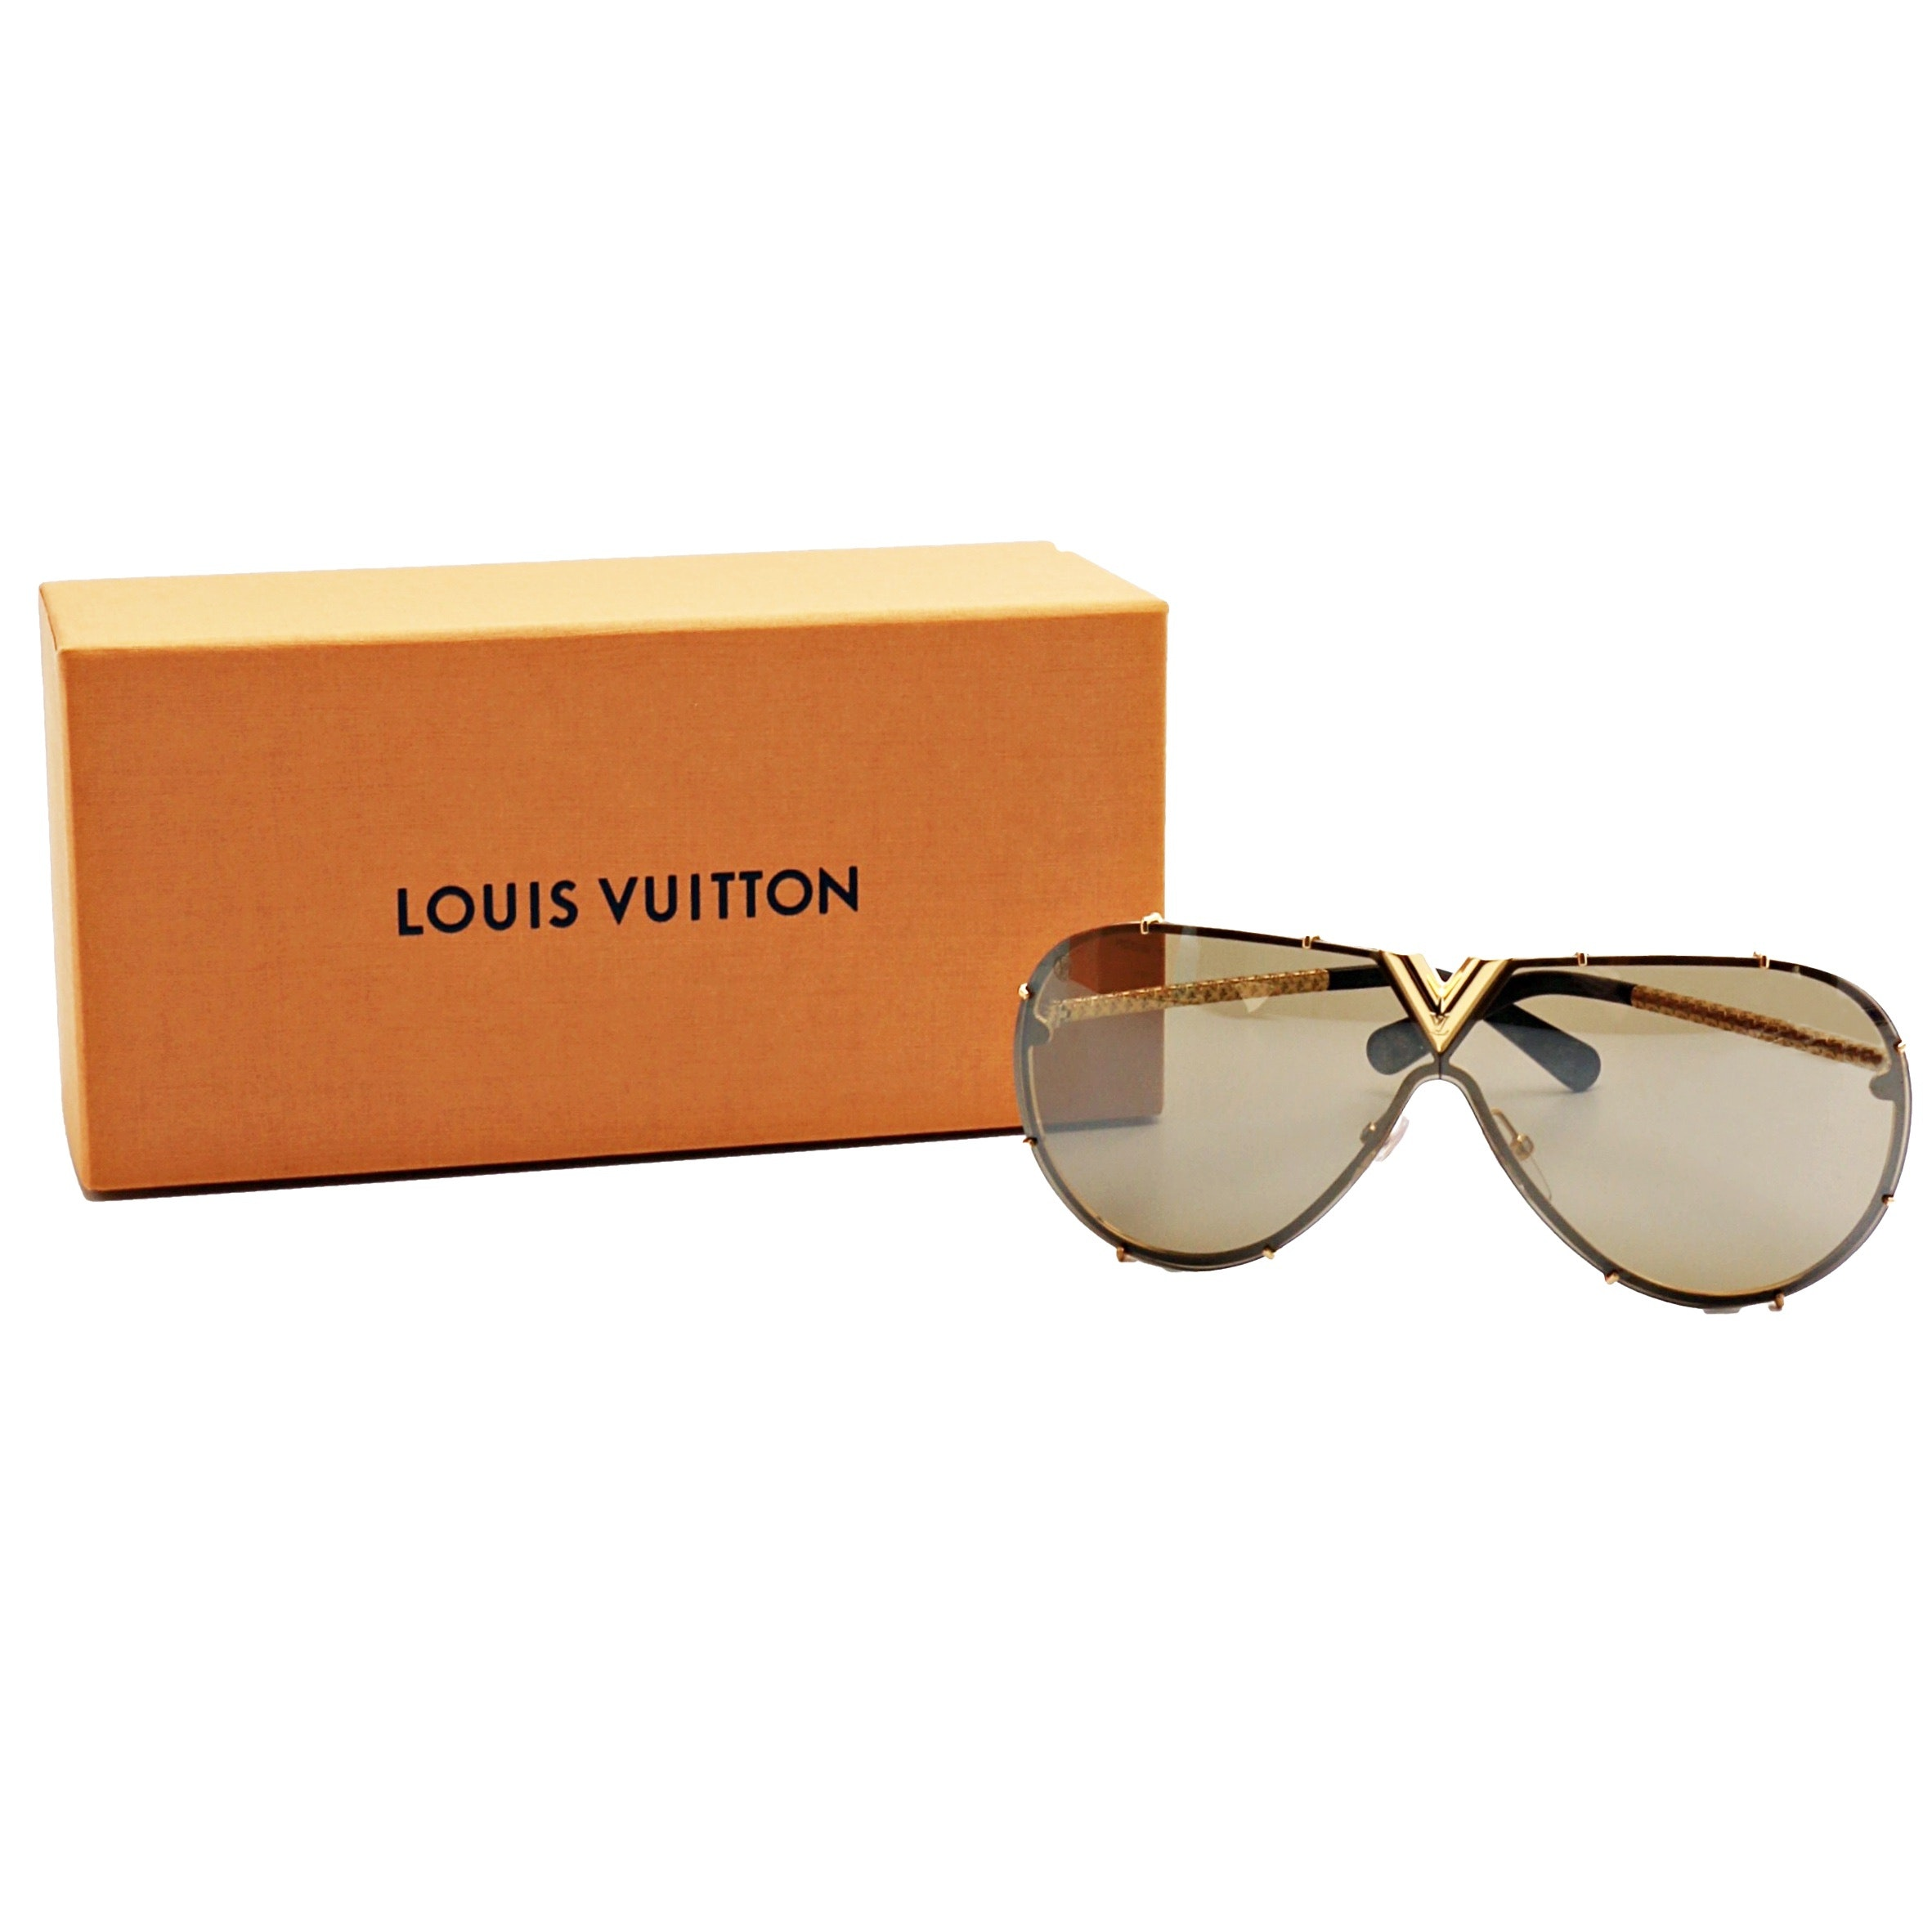 "Louis Vuitton ""Drive"" Silver Sunglasses with Case, Box and Bag"